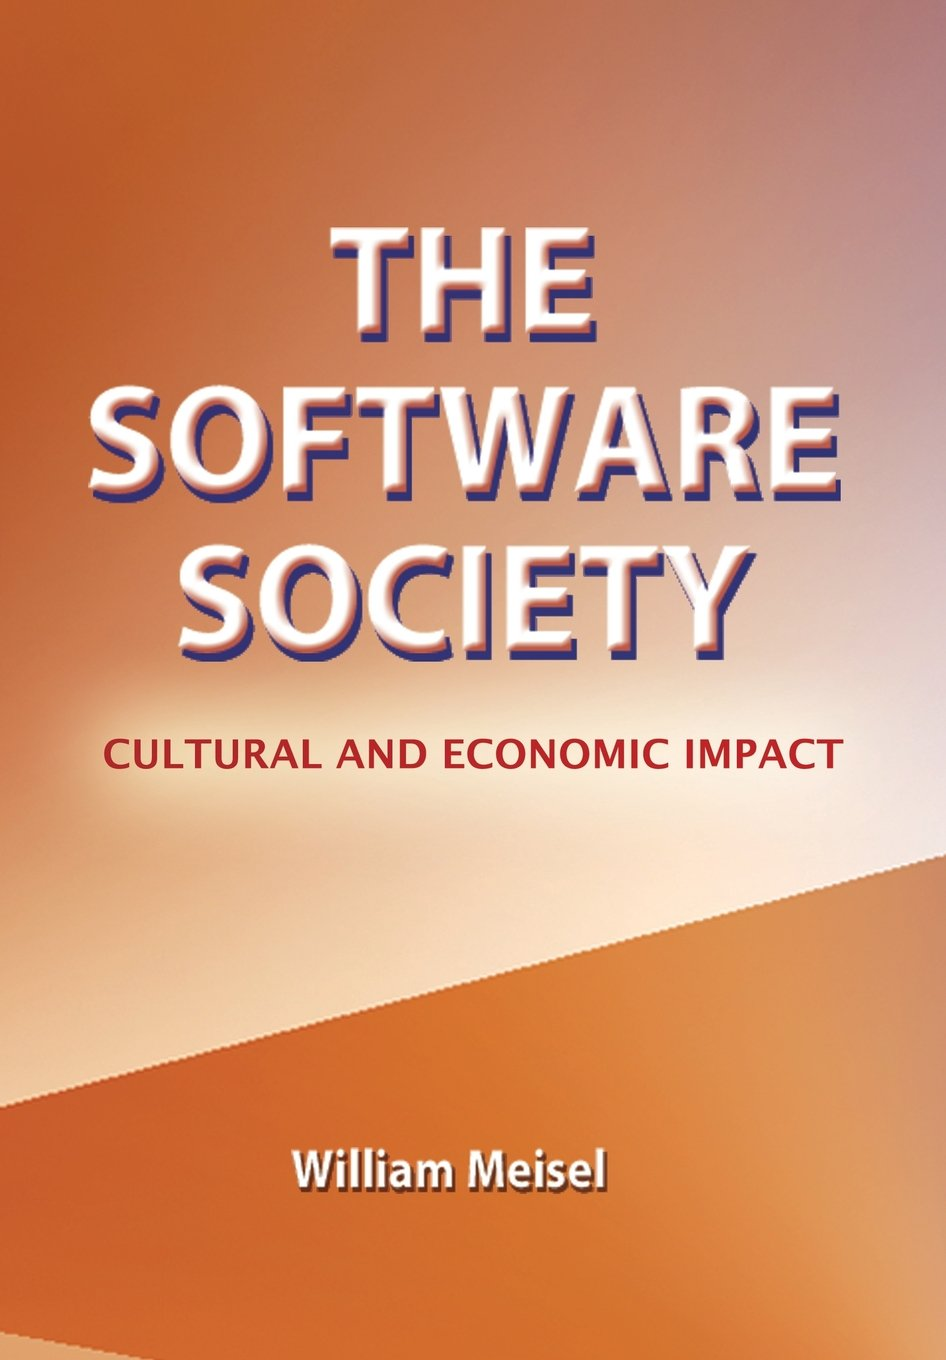 the software society cultural and economic impact william meisel the software society cultural and economic impact william meisel 9781466974135 com books